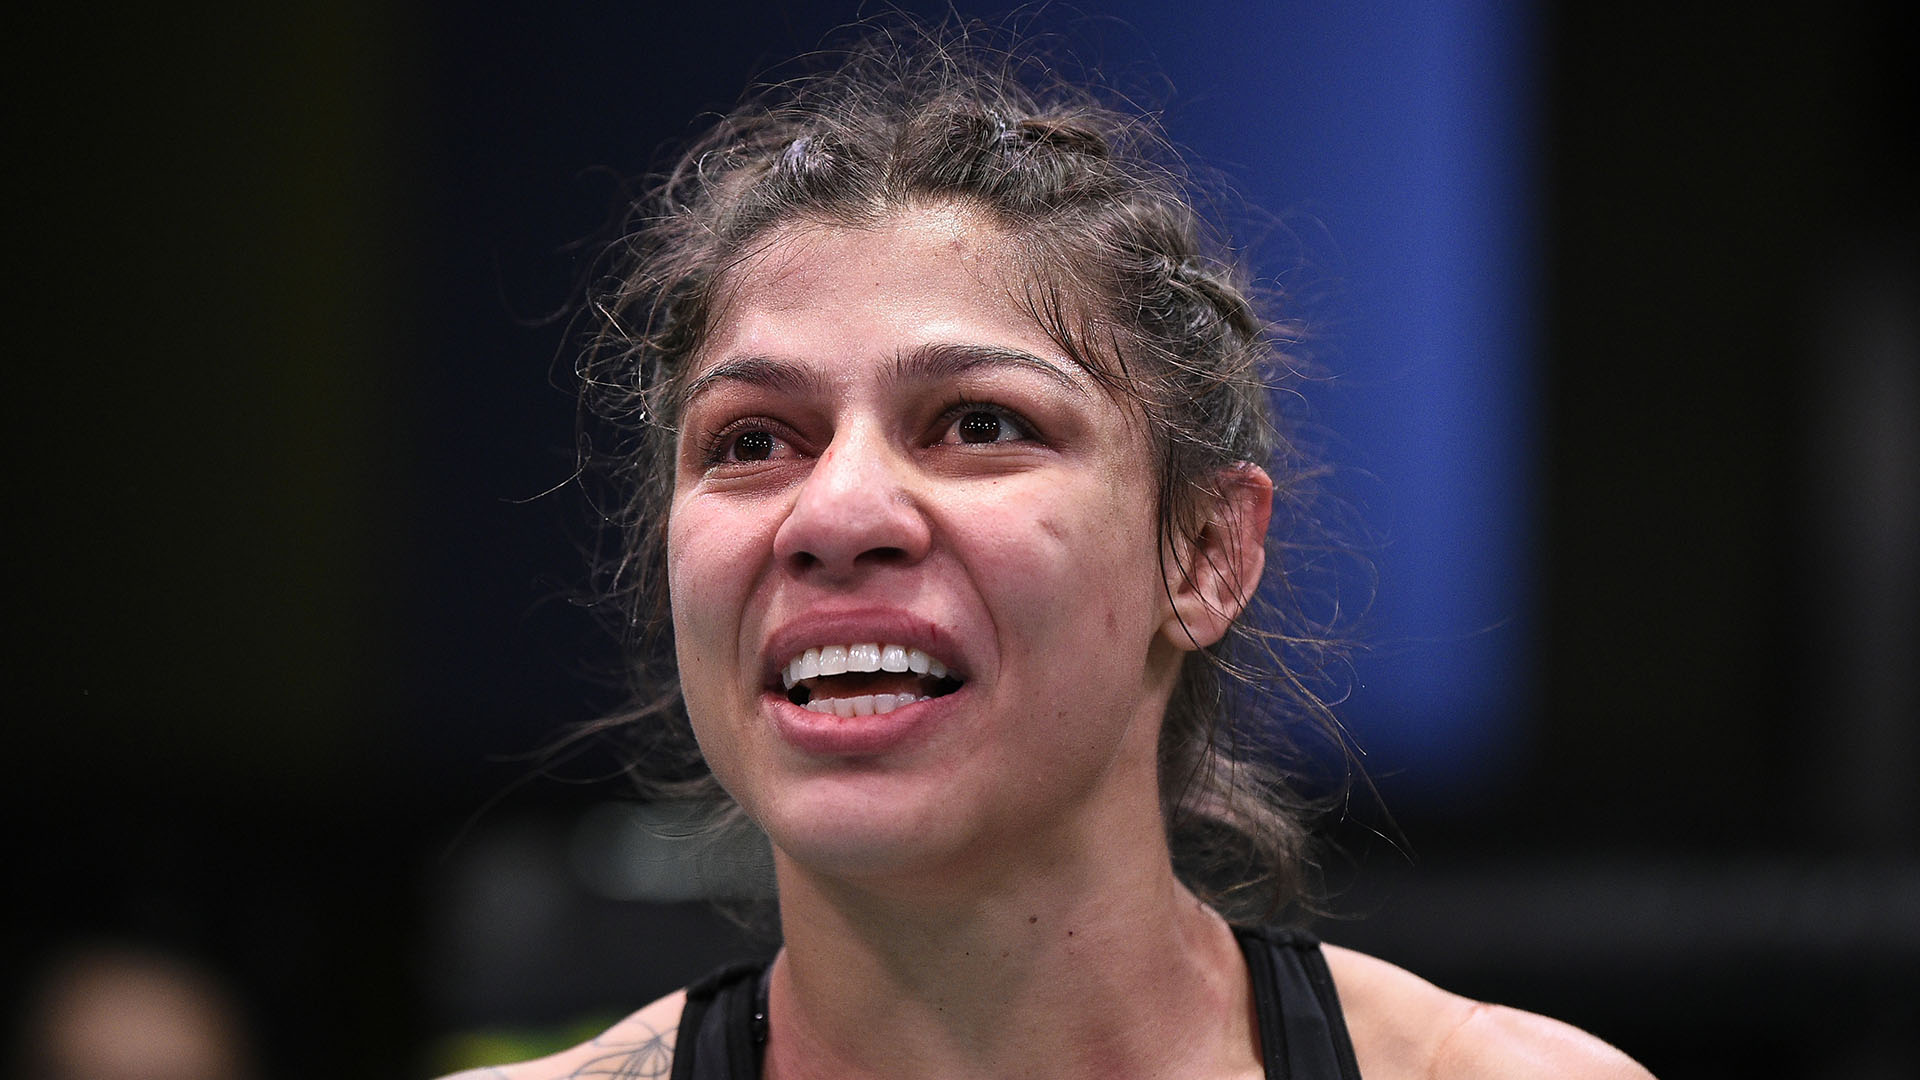 Mayra Bueno Silva of Brazil reacts after her submission victory over Mara Romero Borella in their flyweight bout during the UFC Fight Night event at UFC APEX on September 19, 2020 in Las Vegas, Nevada. (Photo by Chris Unger/Zuffa LLC)